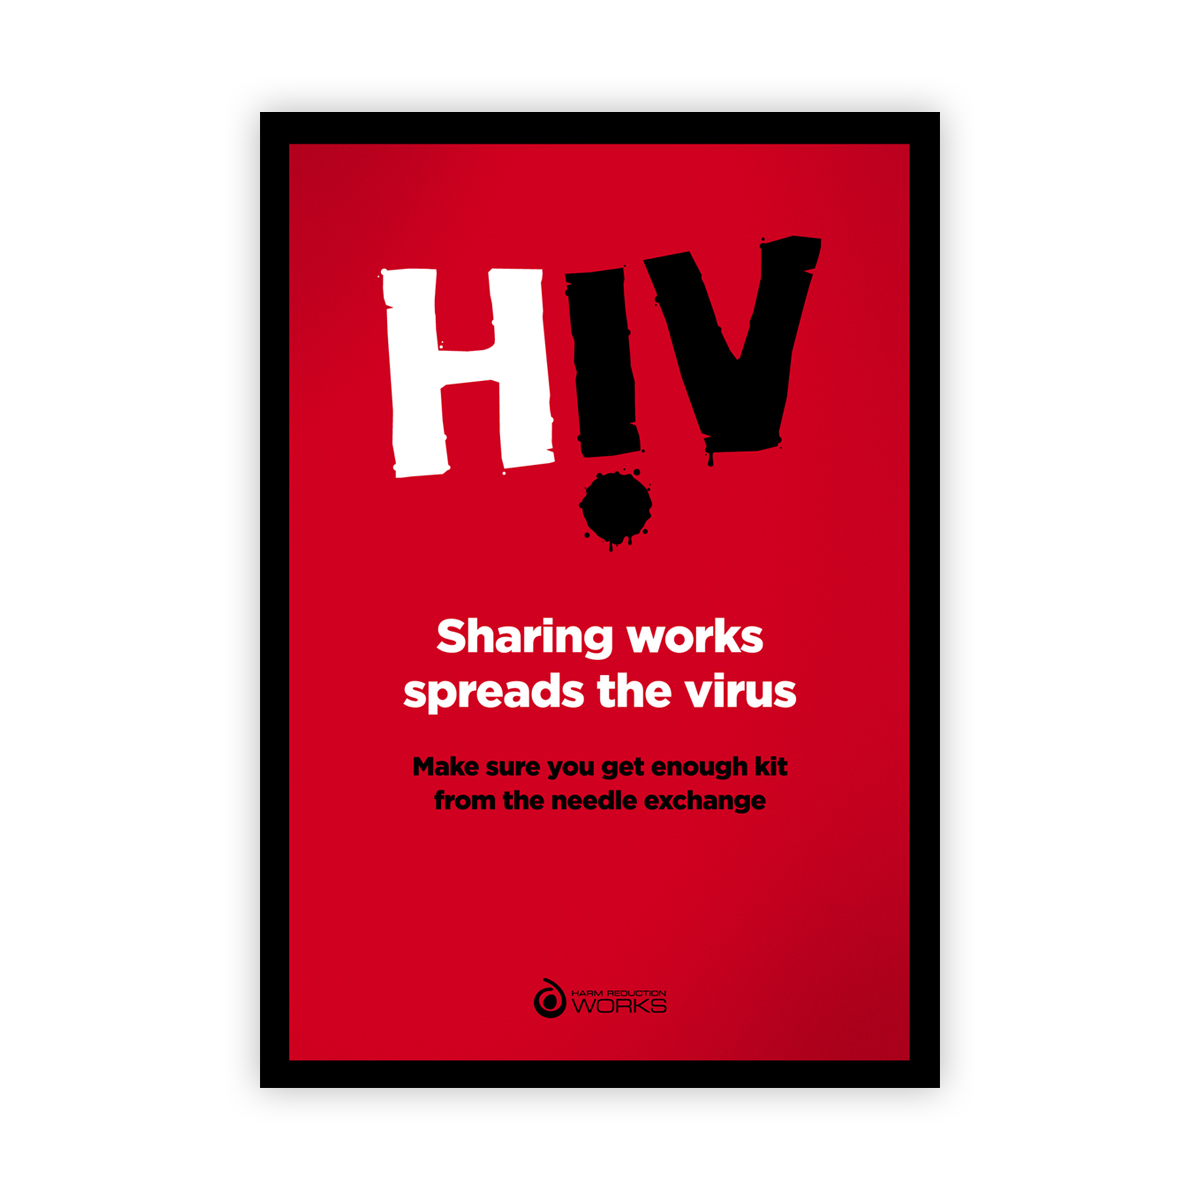 HIV poster: sharing works spreads the virus